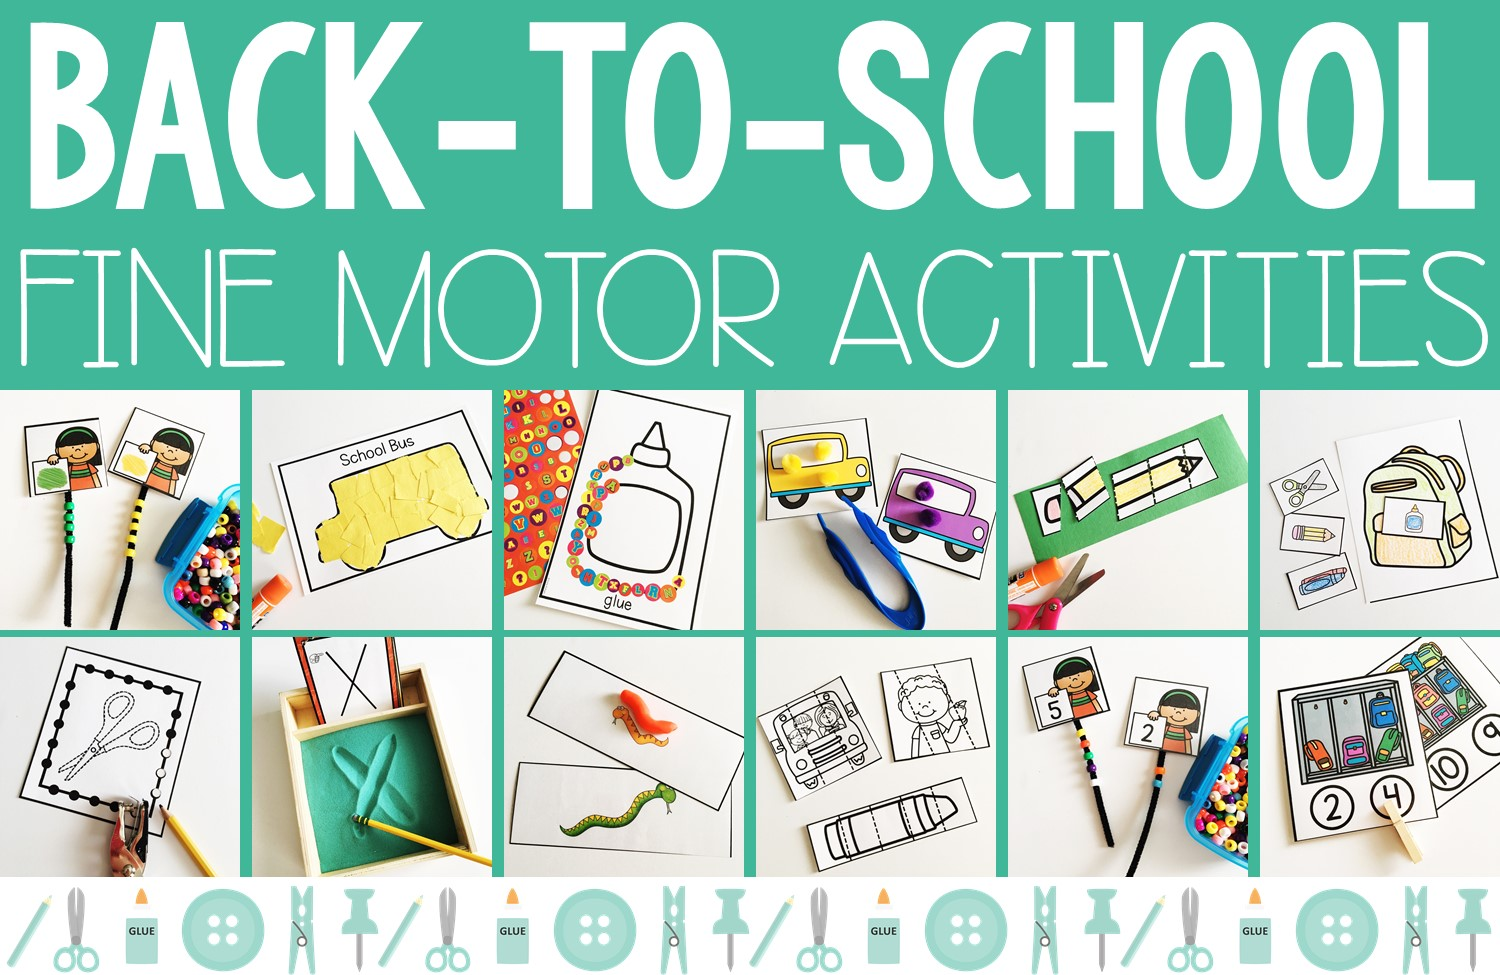 Back-to-School Fine Motor Activities | Resources by Mrs. Roltgen